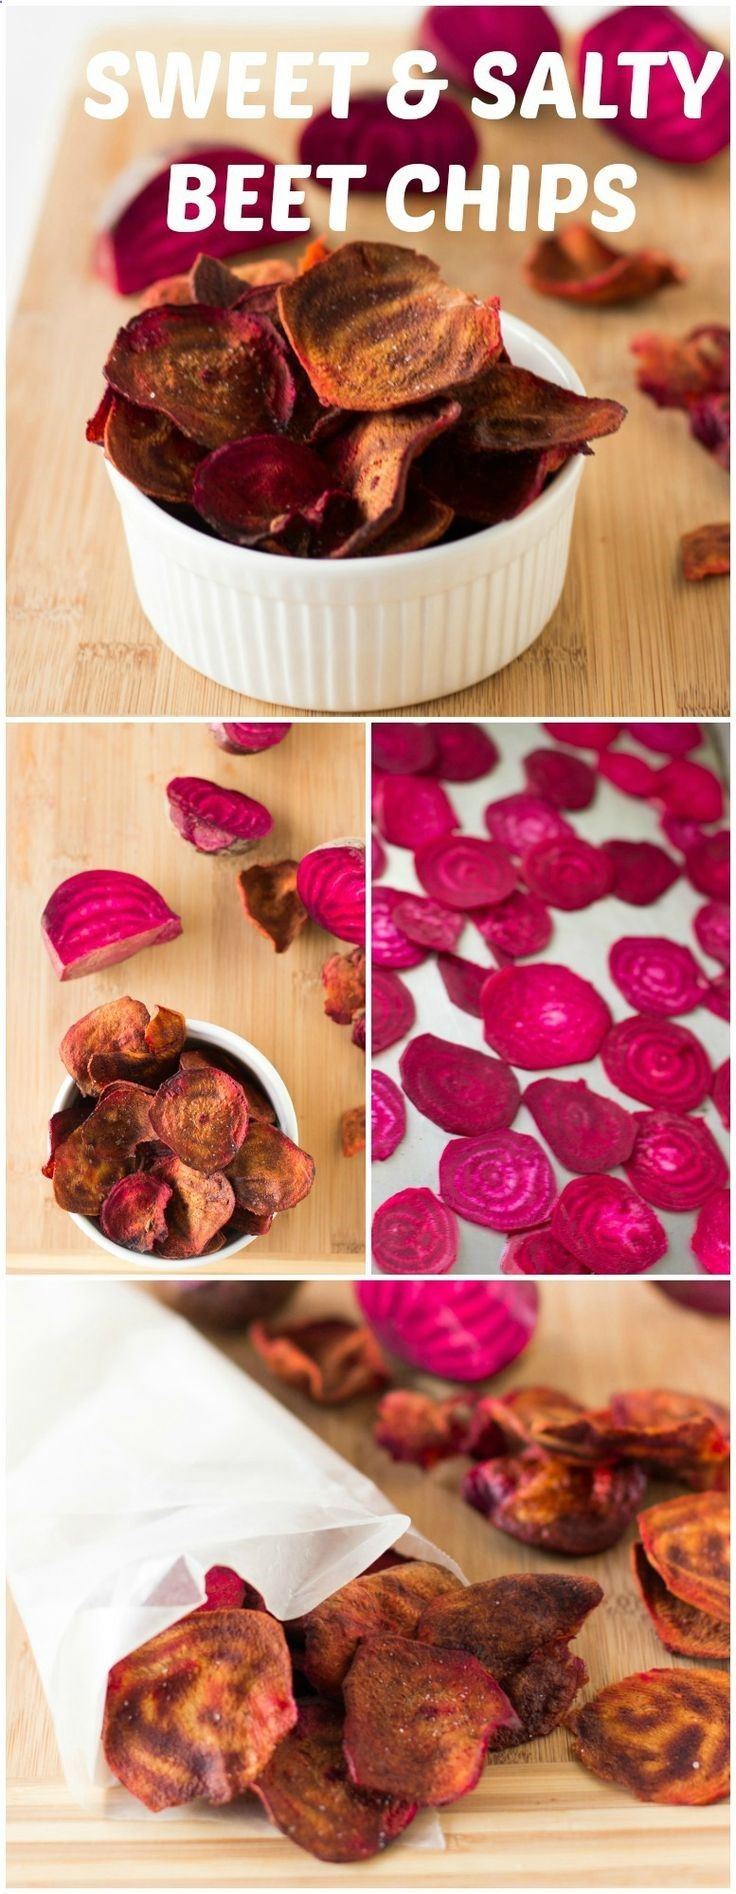 Beet Chips are a bright, colourful and and sweet and salty crunchy snack. #cleaneating